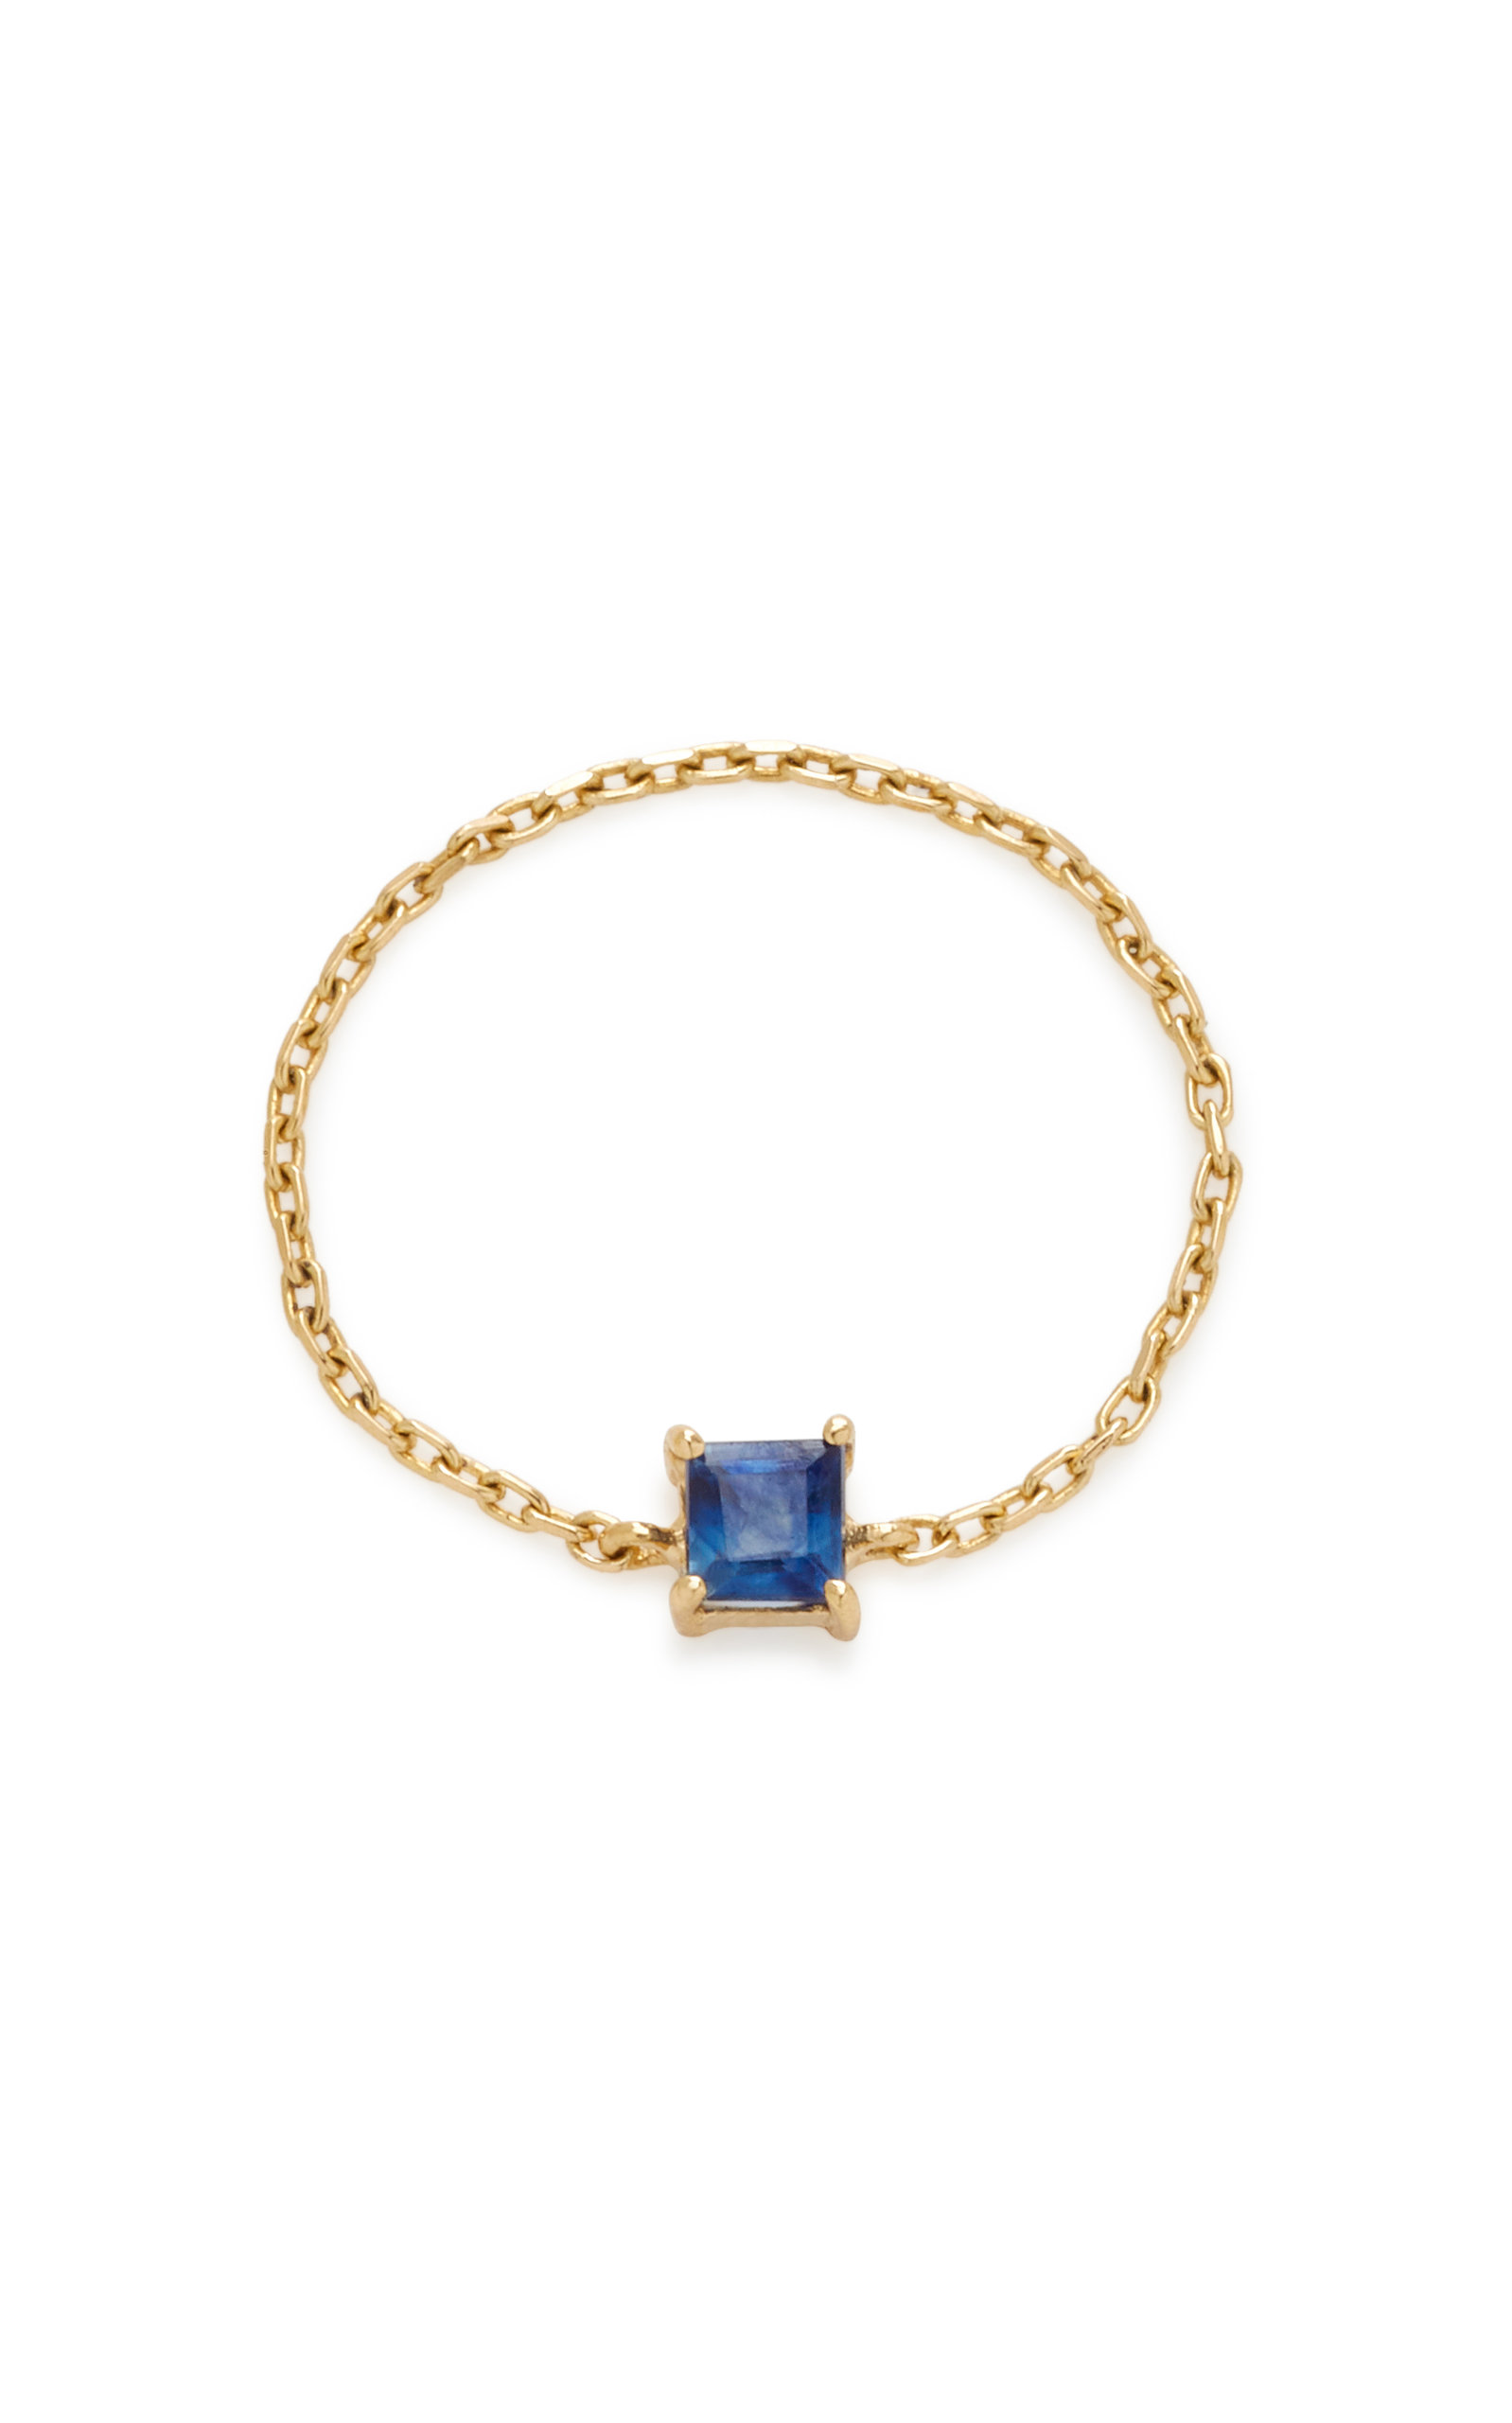 YI COLLECTION 18K GOLD SAPPHIRE RING